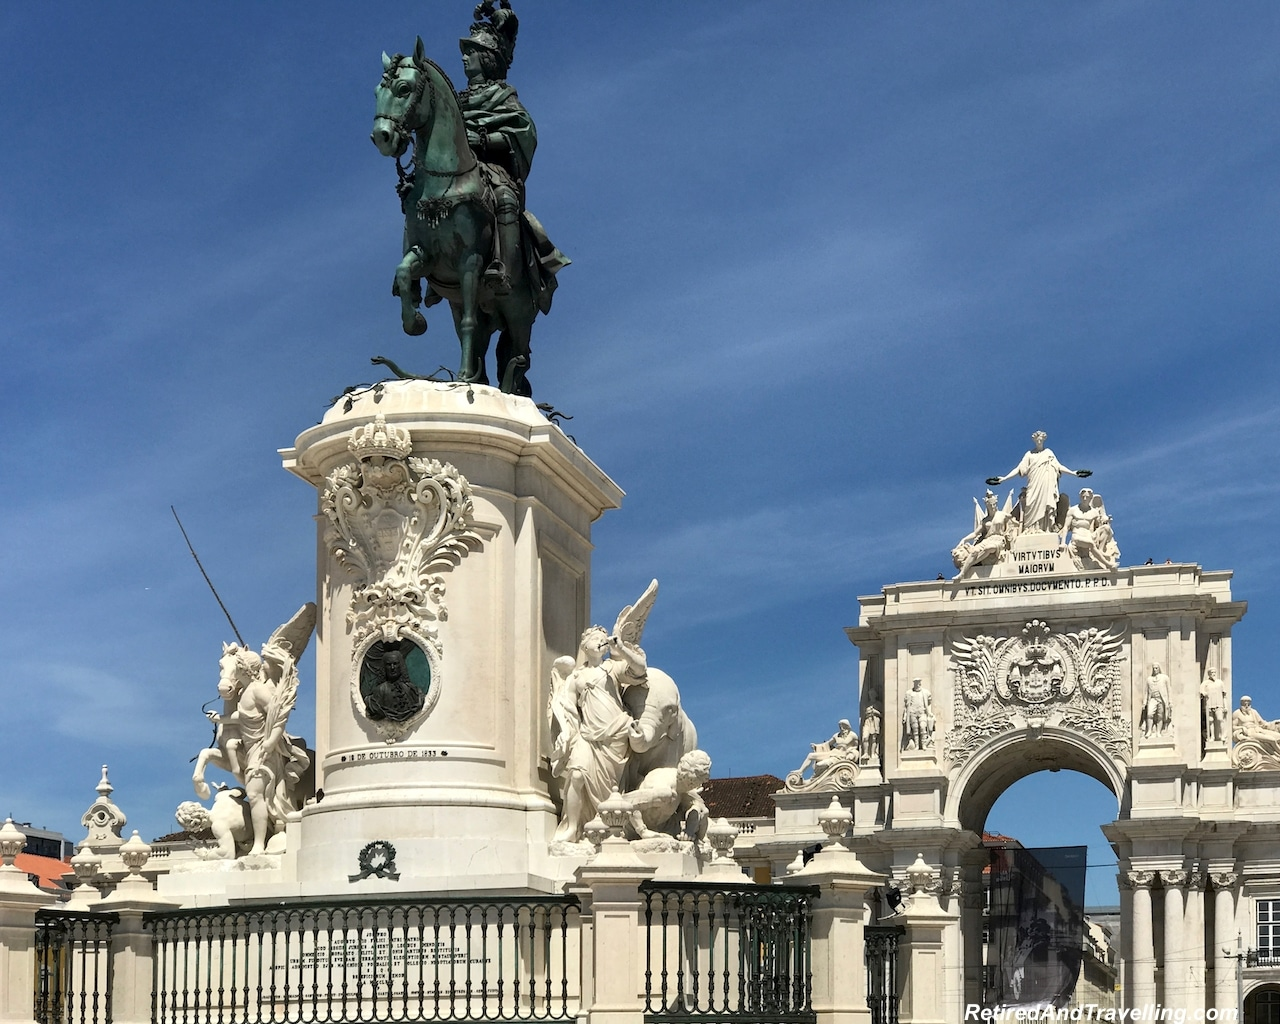 Lisbon Commercio Arch and Statue - 4 Weeks In Portugal.jpg